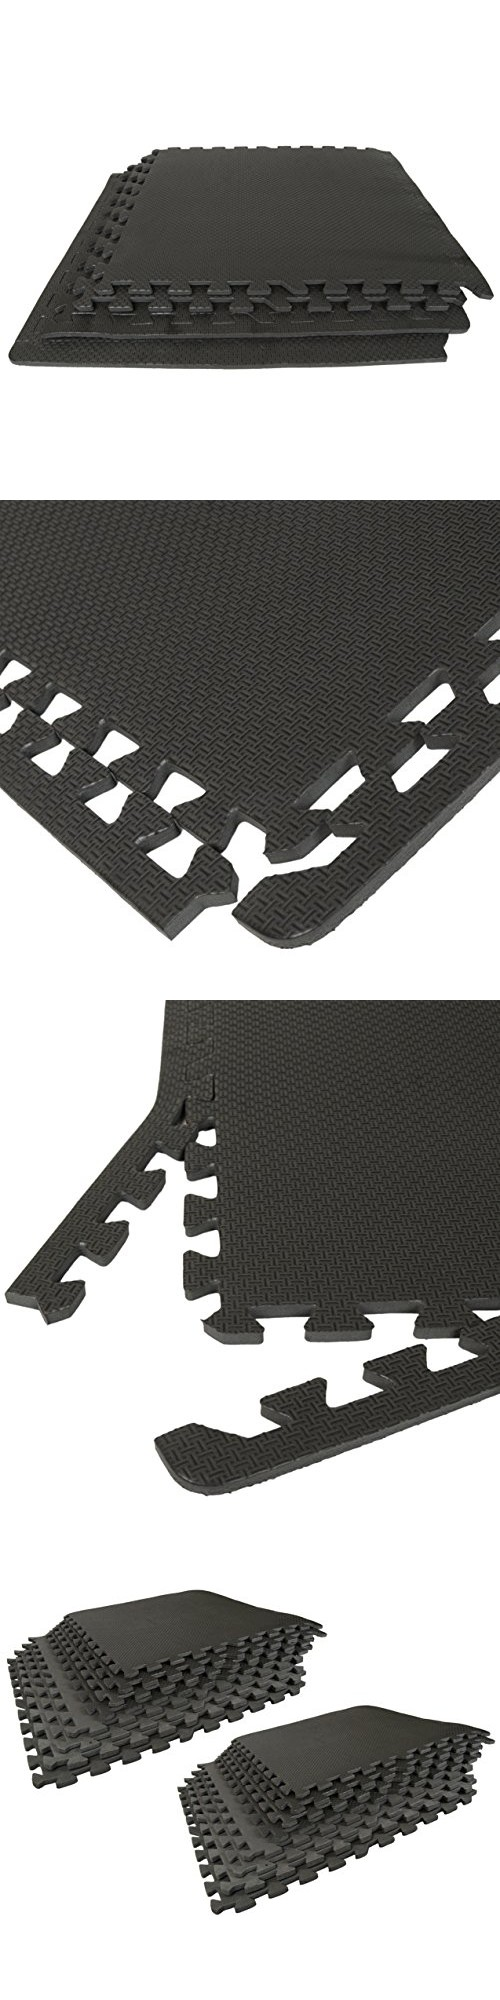 Best step interlocking anti fatigue flooring tiles for home gyms best step interlocking anti fatigue flooring tiles for home gyms exercise rooms dailygadgetfo Images